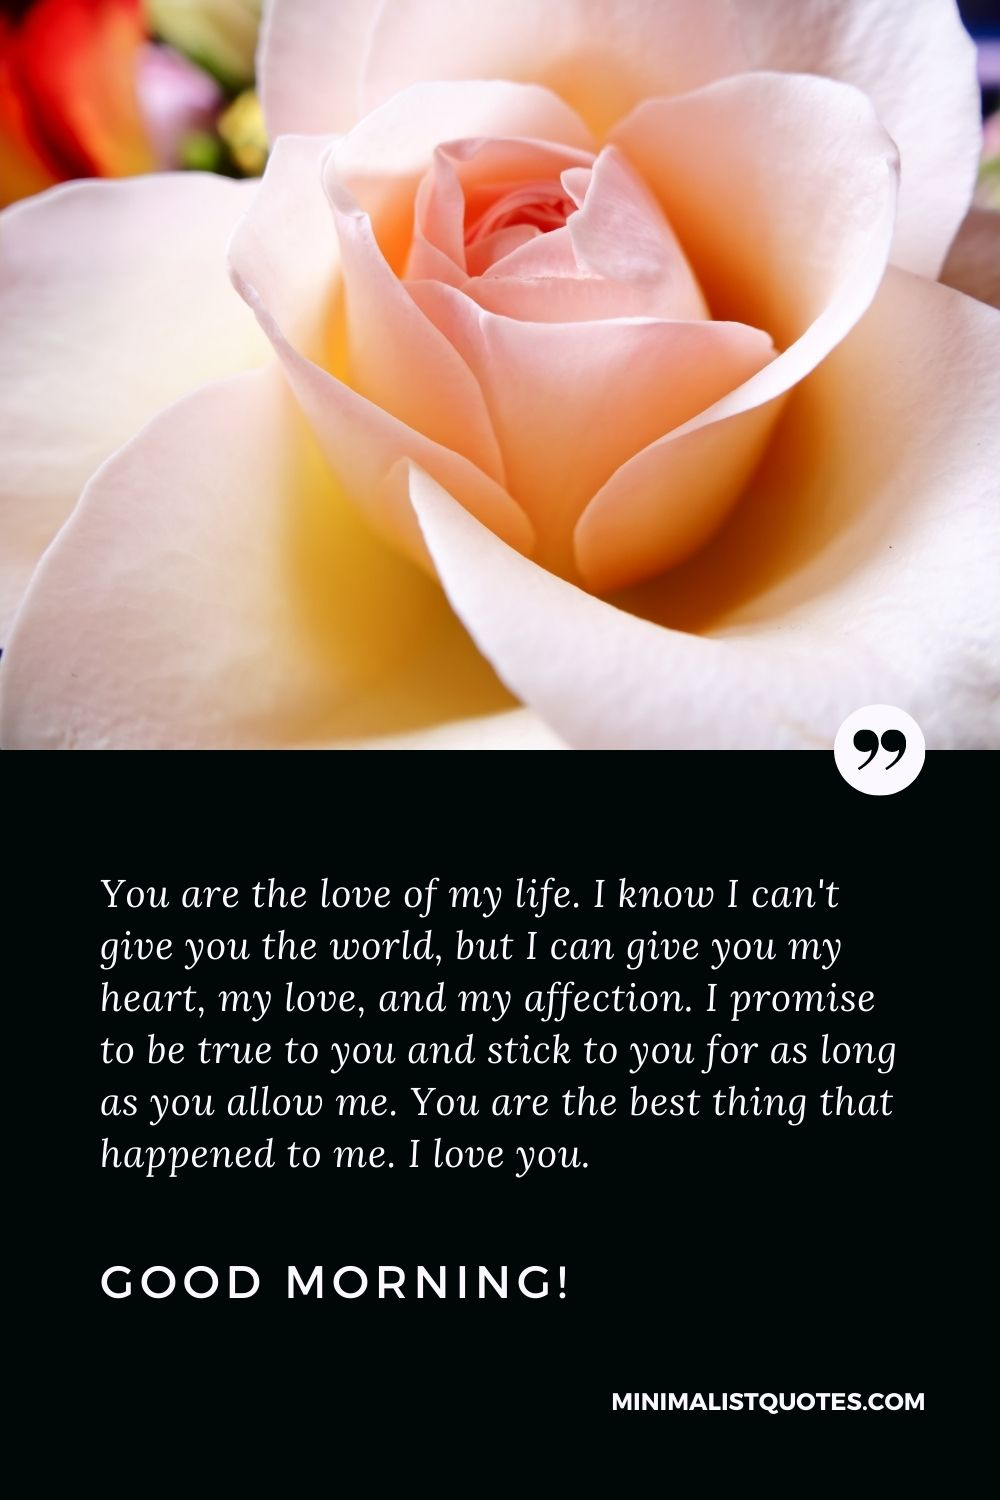 Life my messages are you Romantic I